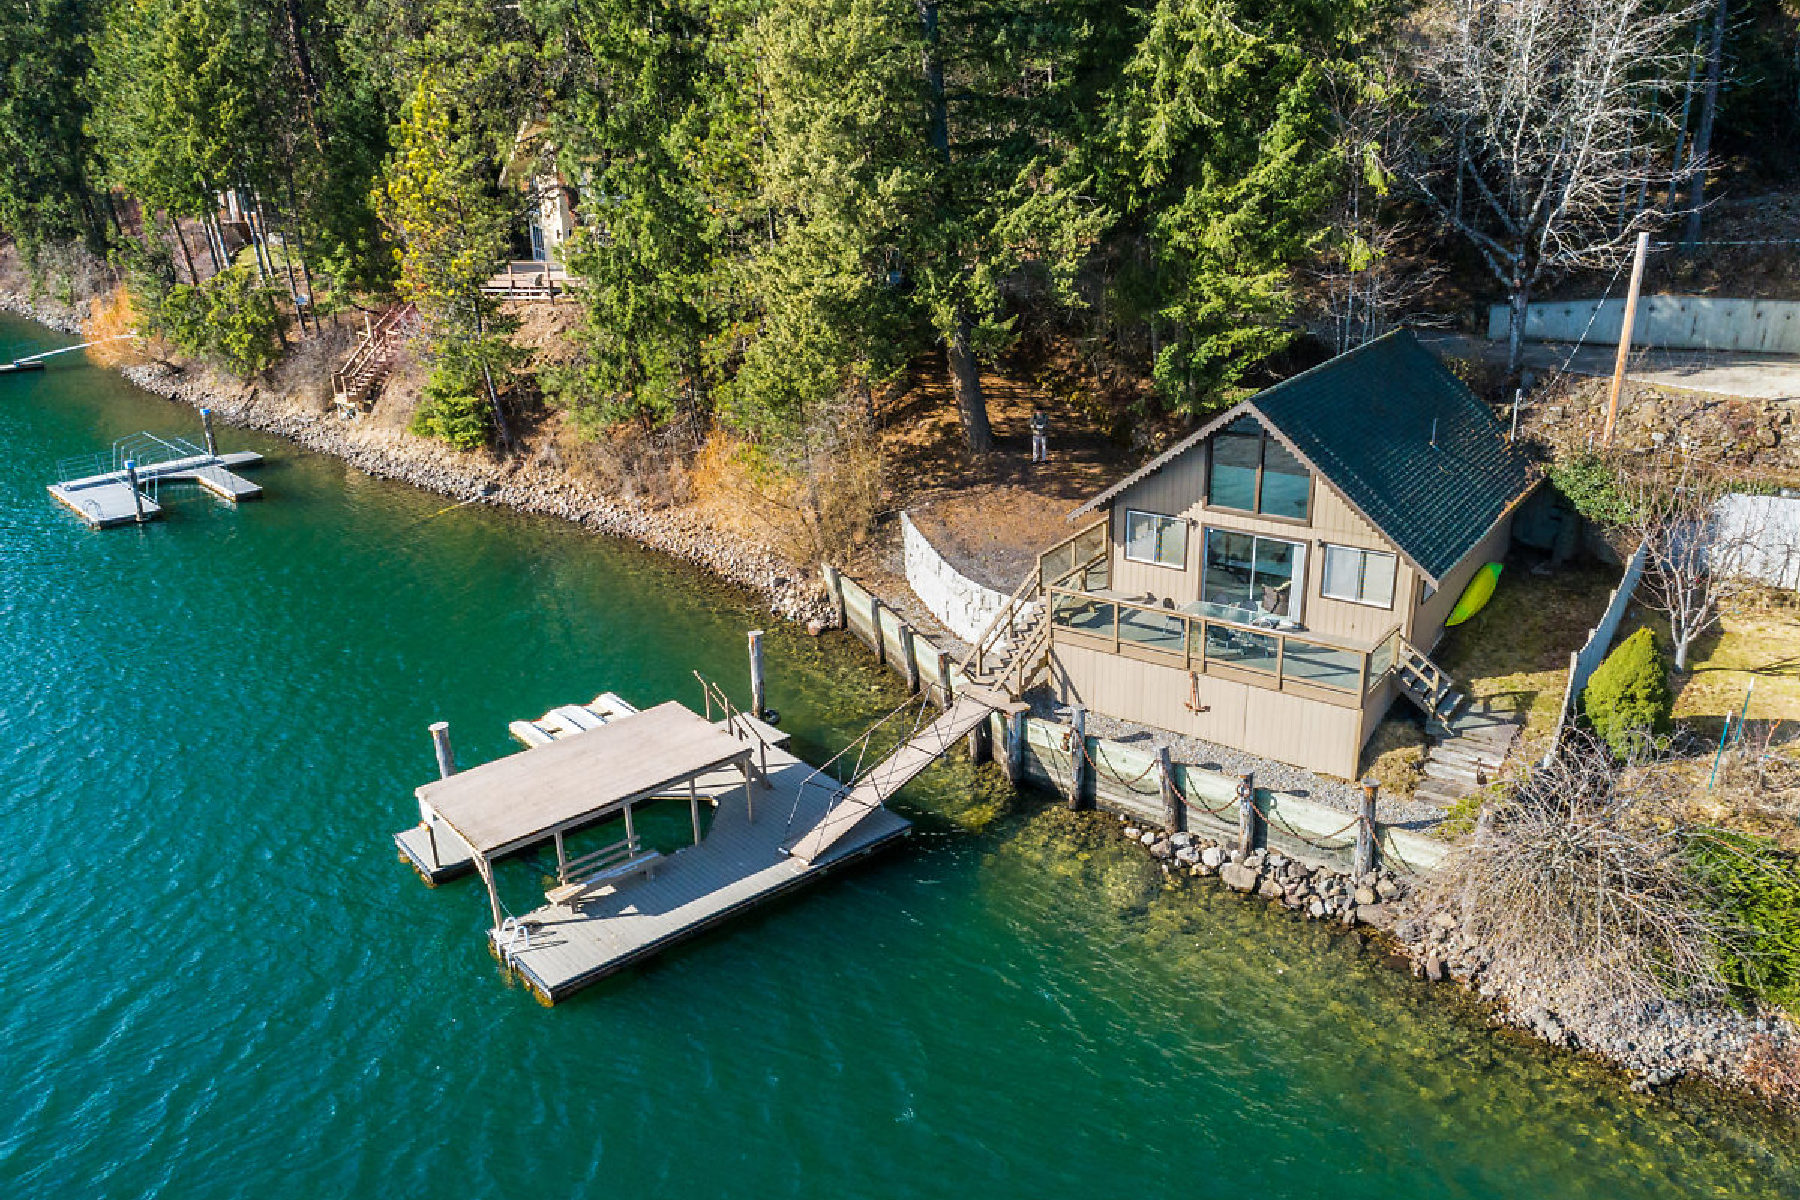 Single Family Homes for Sale at CHARMING HAYDEN LAKE WATERFRONT CABIN 6673 E Deep Shadow Hayden, Idaho 83835 United States